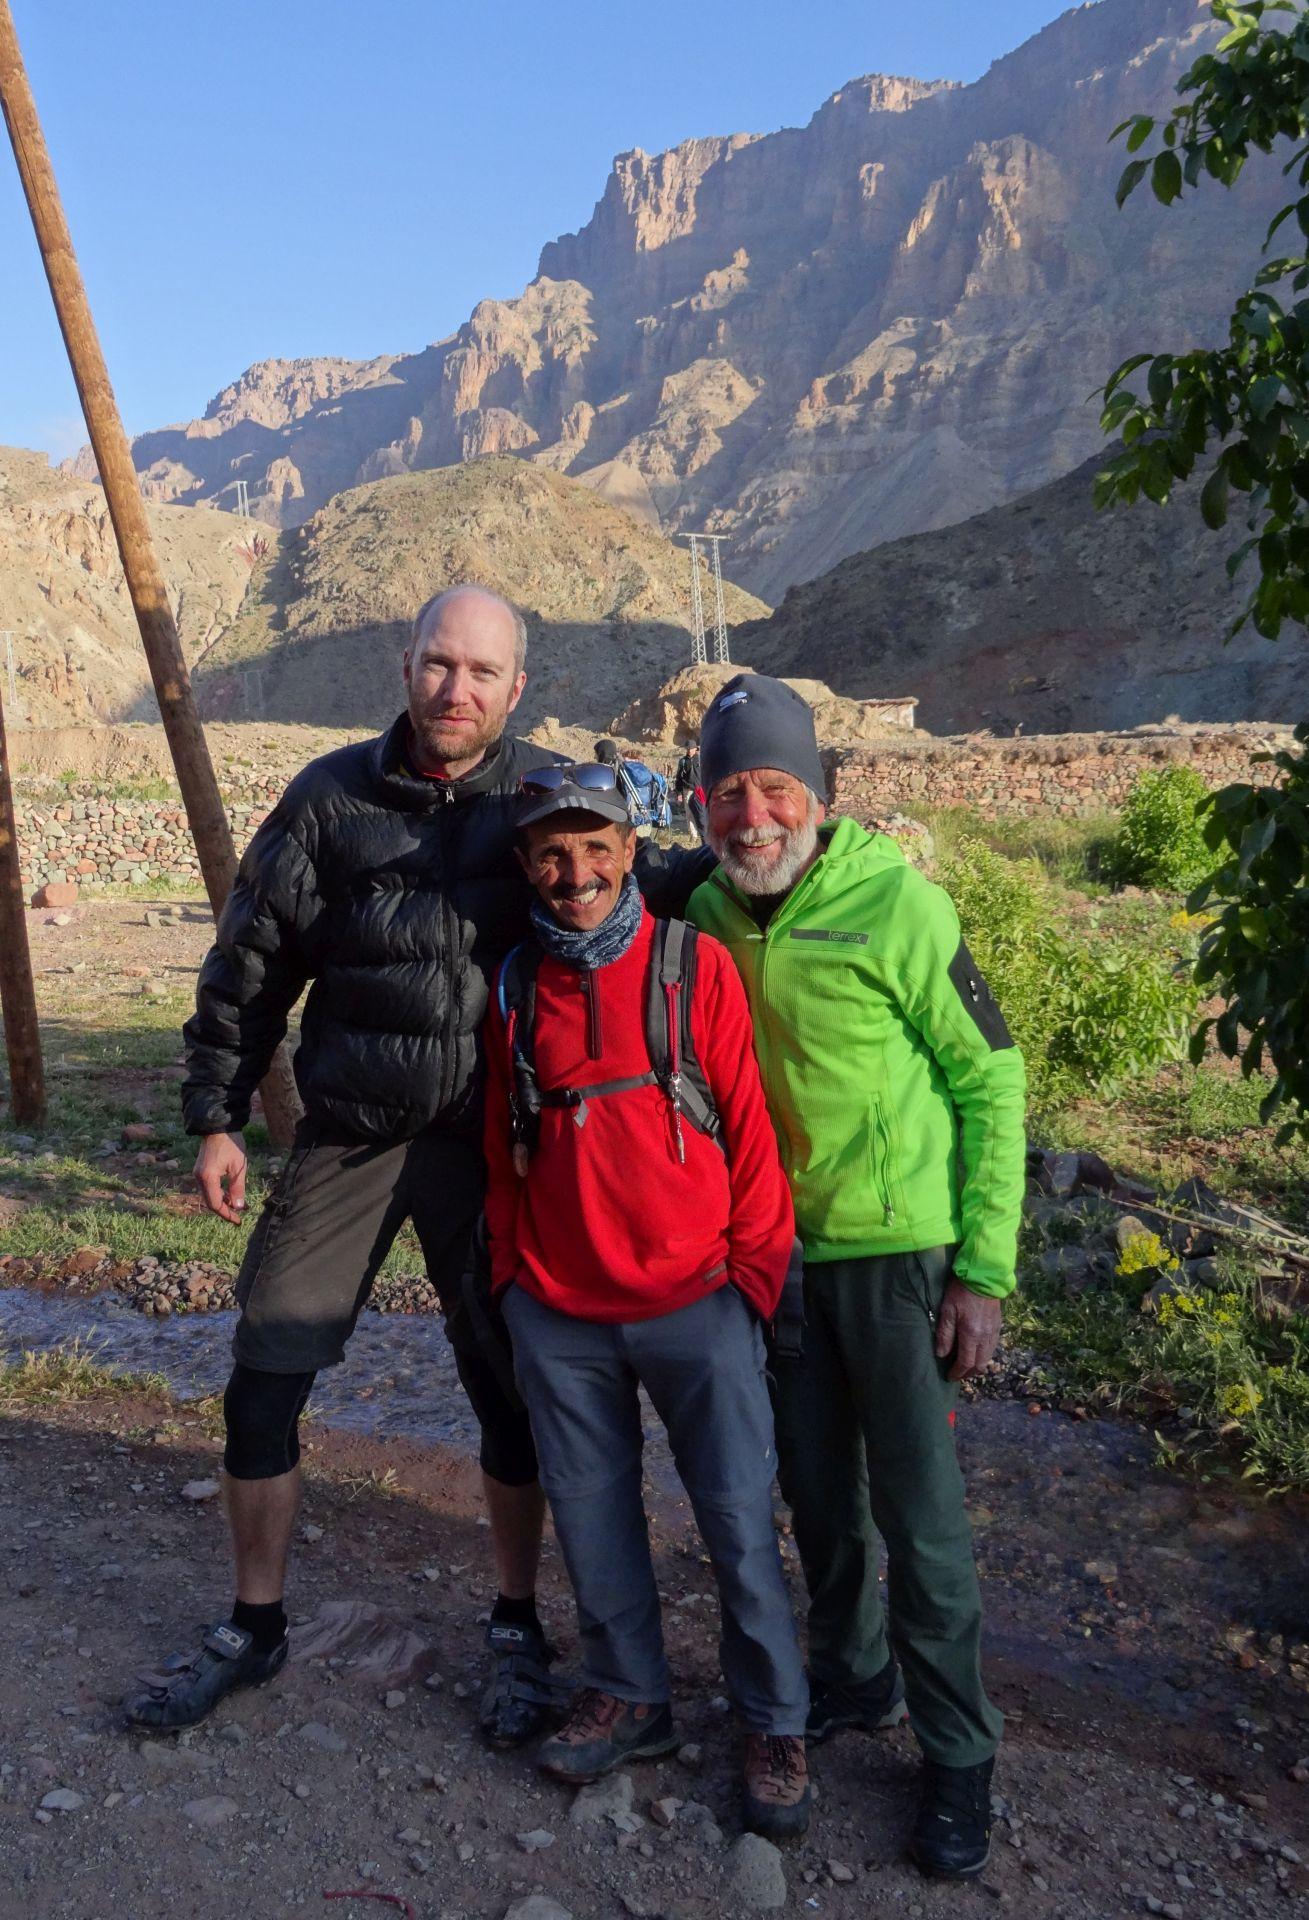 Day 4 - Guides for a trekking group, passing through: Brian (centre) & 74-year-old mountaineering legend, Siegfried Hupfauer (right) Near Ichbbakene, Tassaout valley. © Steve Woodward